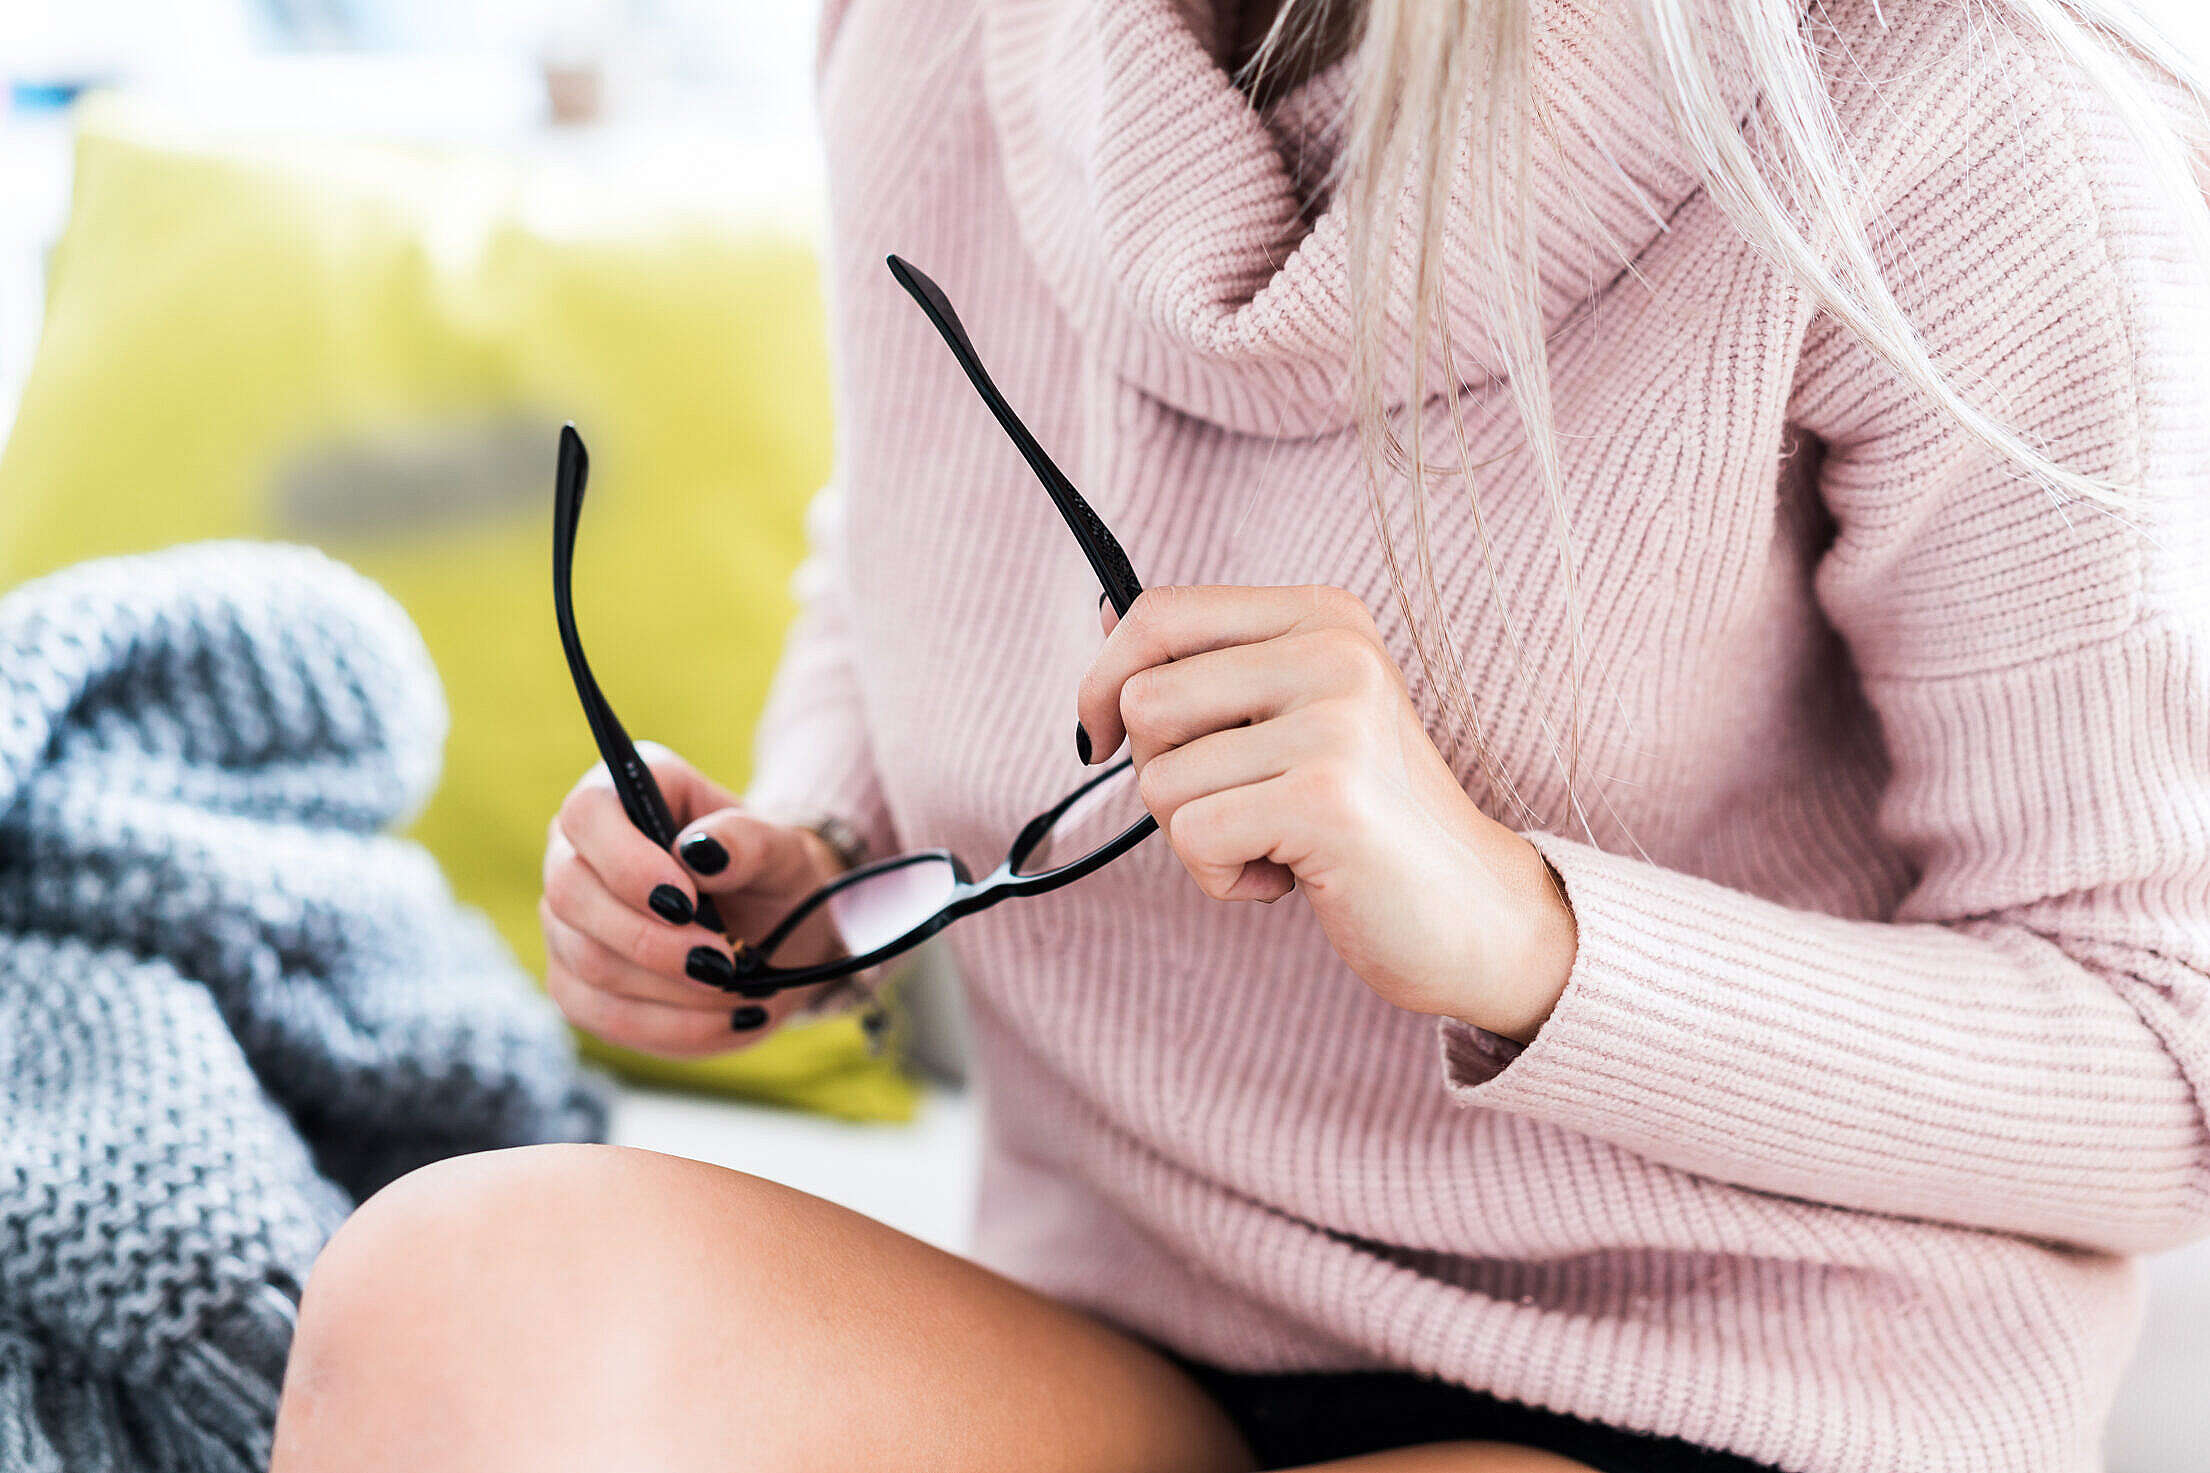 Woman in Pink Sweater Holding Glasses Free Stock Photo